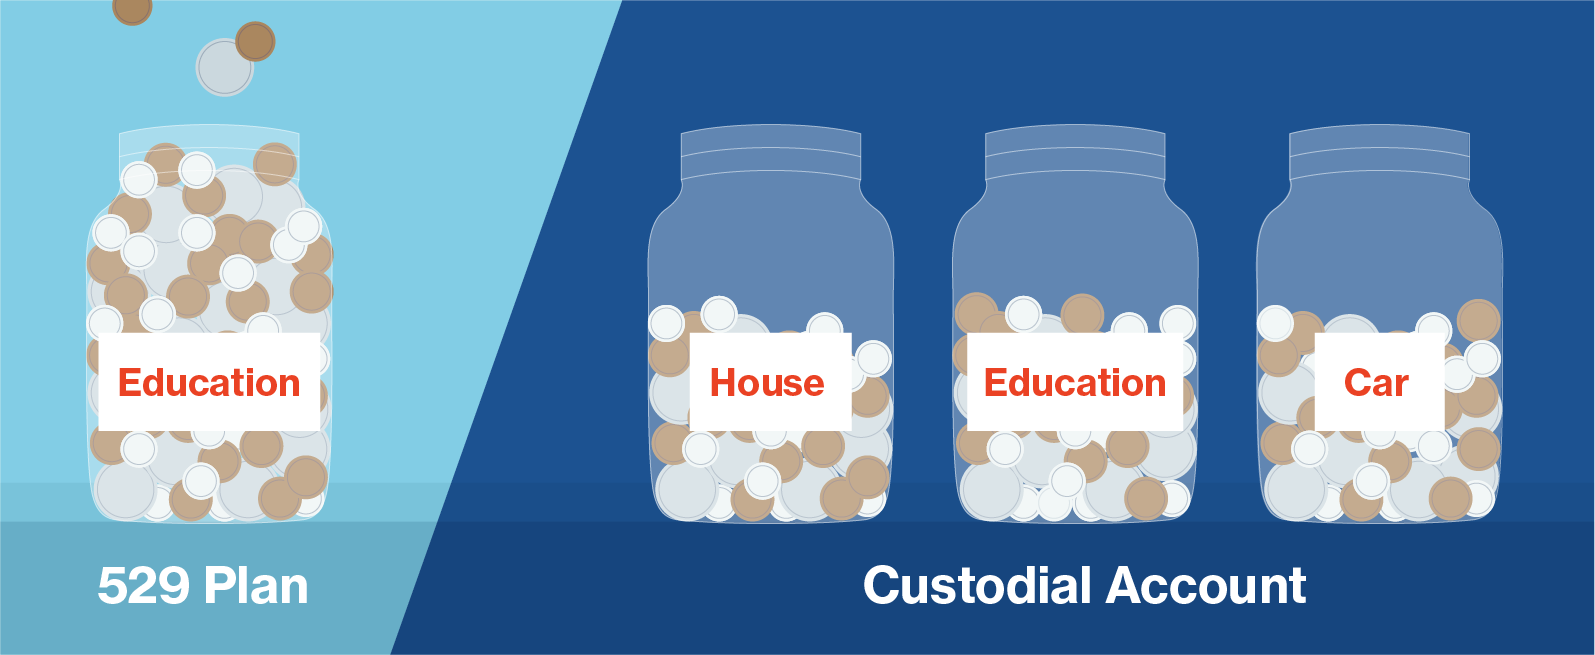 custodial accounts offer much greater flexibility than 529 plans